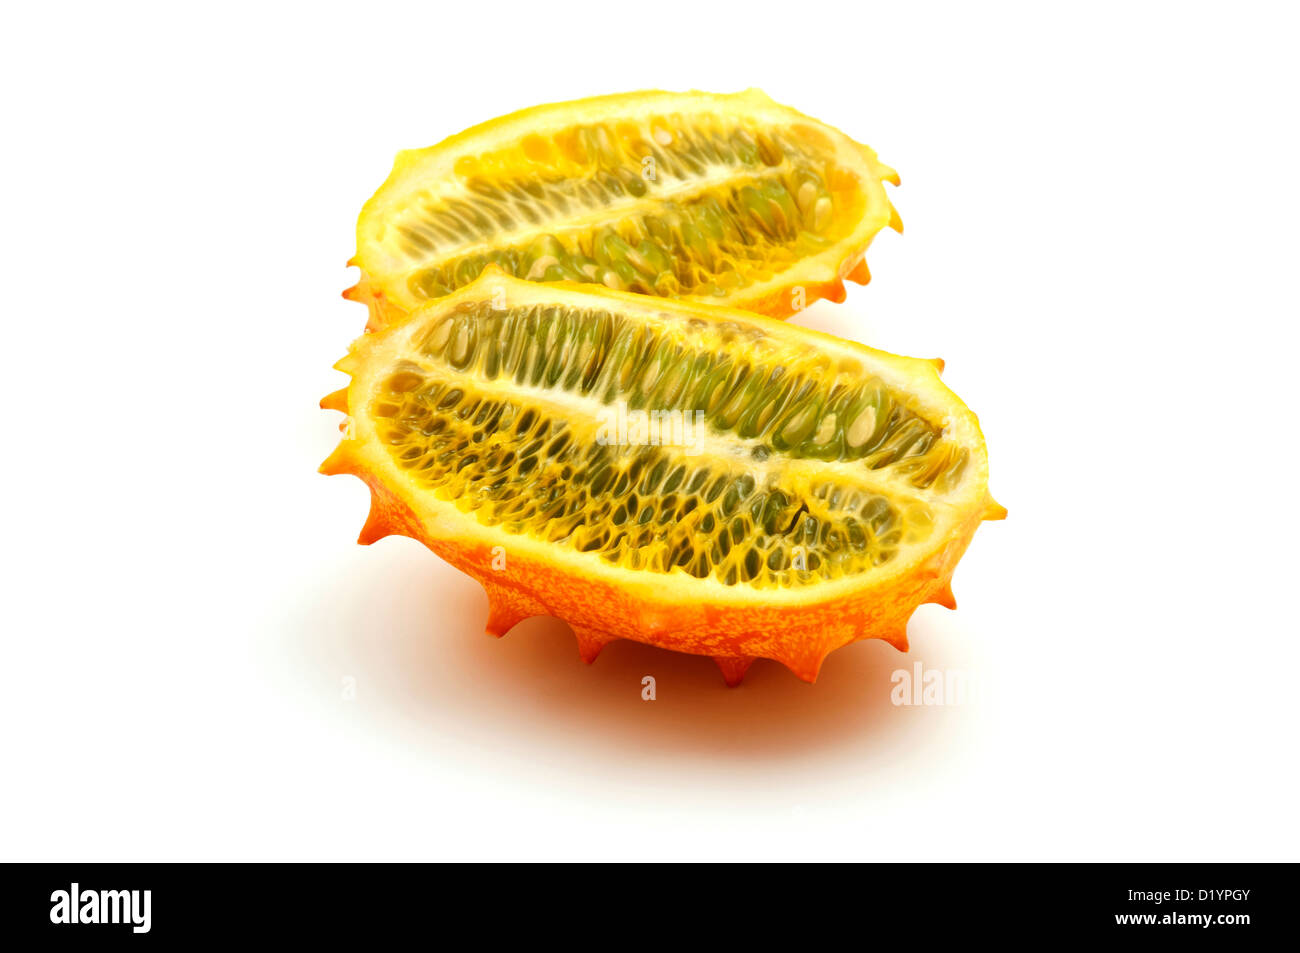 Horned melon on a white background - Stock Image